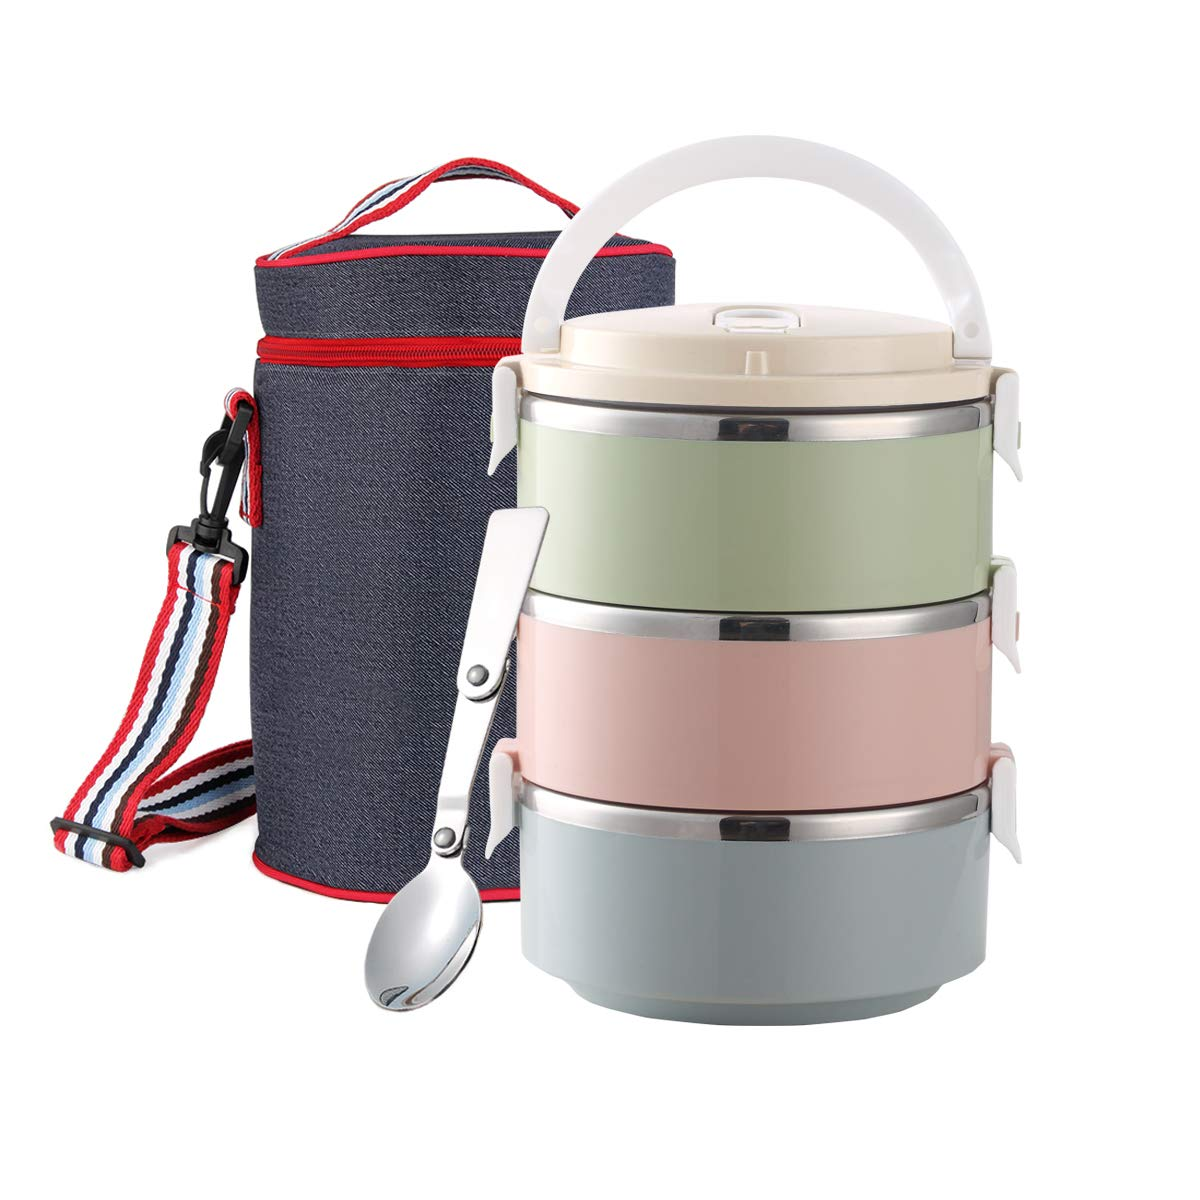 Stackable Stainless Steel Lunch Box, Food Container with Insulated Lunch Bag and Foldable Spoon, Leak Proof Bento Lunch Box for Adults Kids Students Food Storage Boxes (2-Tier, Blue) Maiyuansu